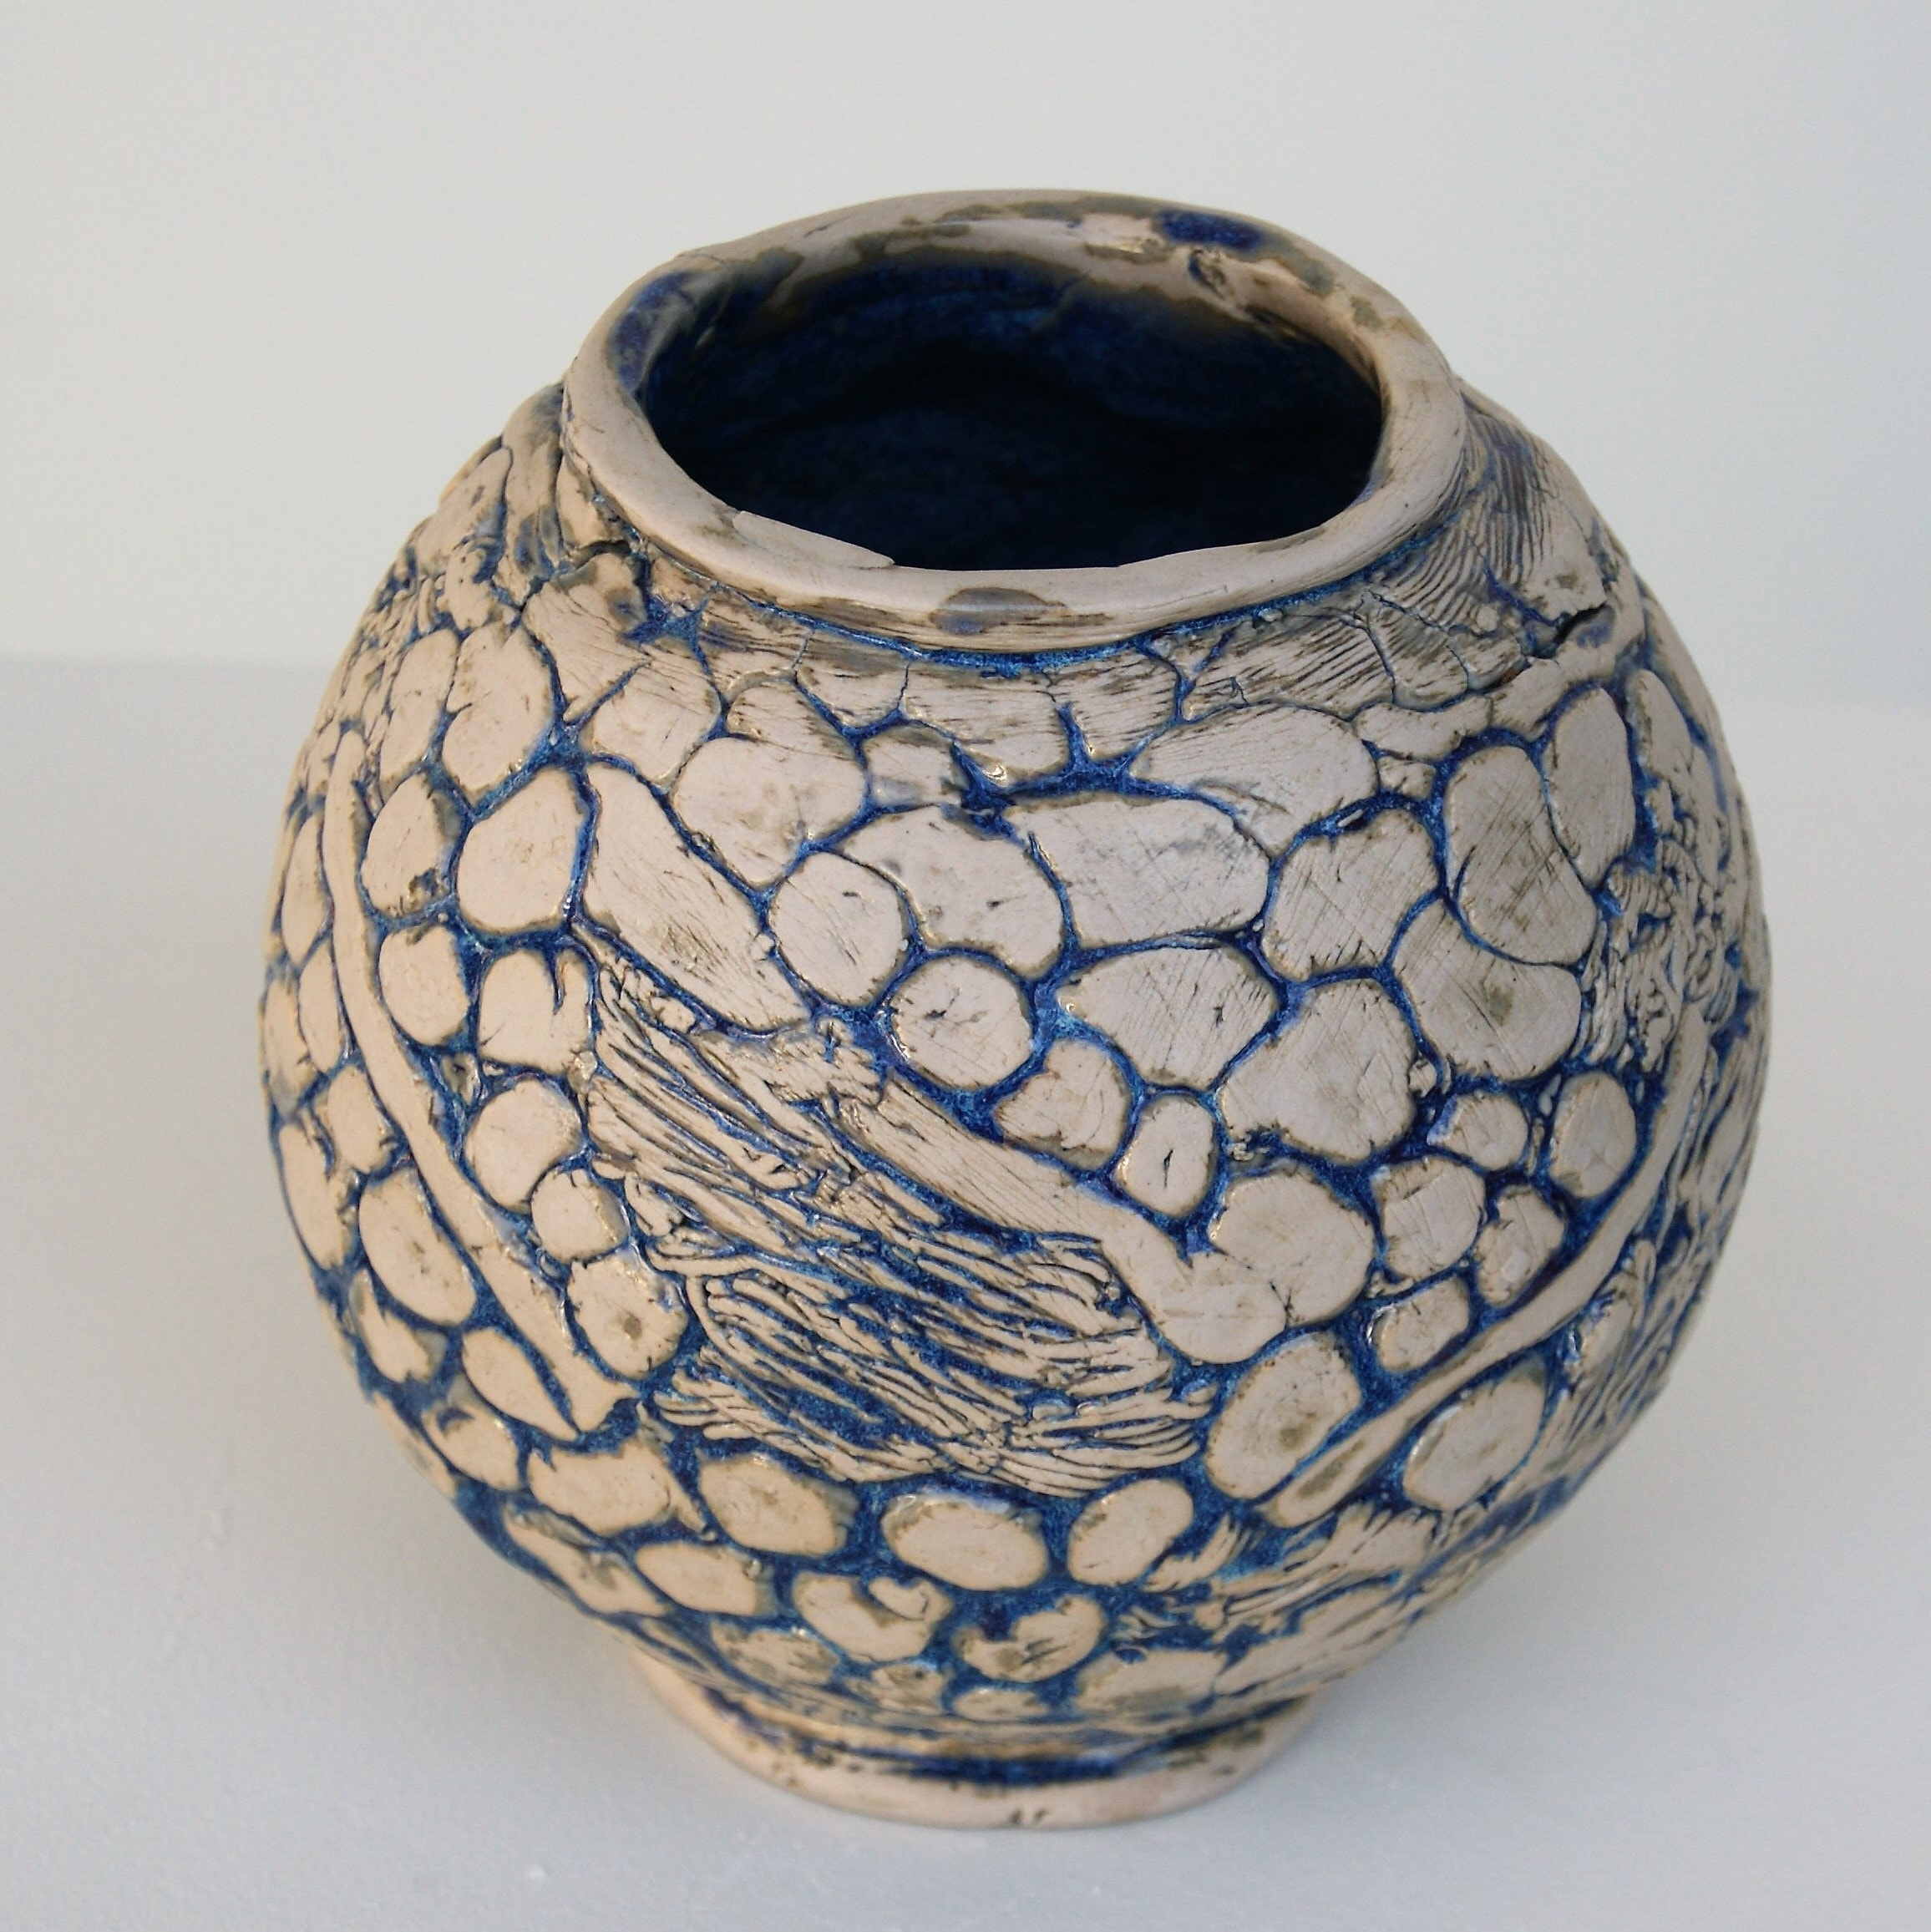 Large spherical hand-built pot in pale ceramic body featuring patterns created with dots, lines and textures accentuated with touches of blue glaze.